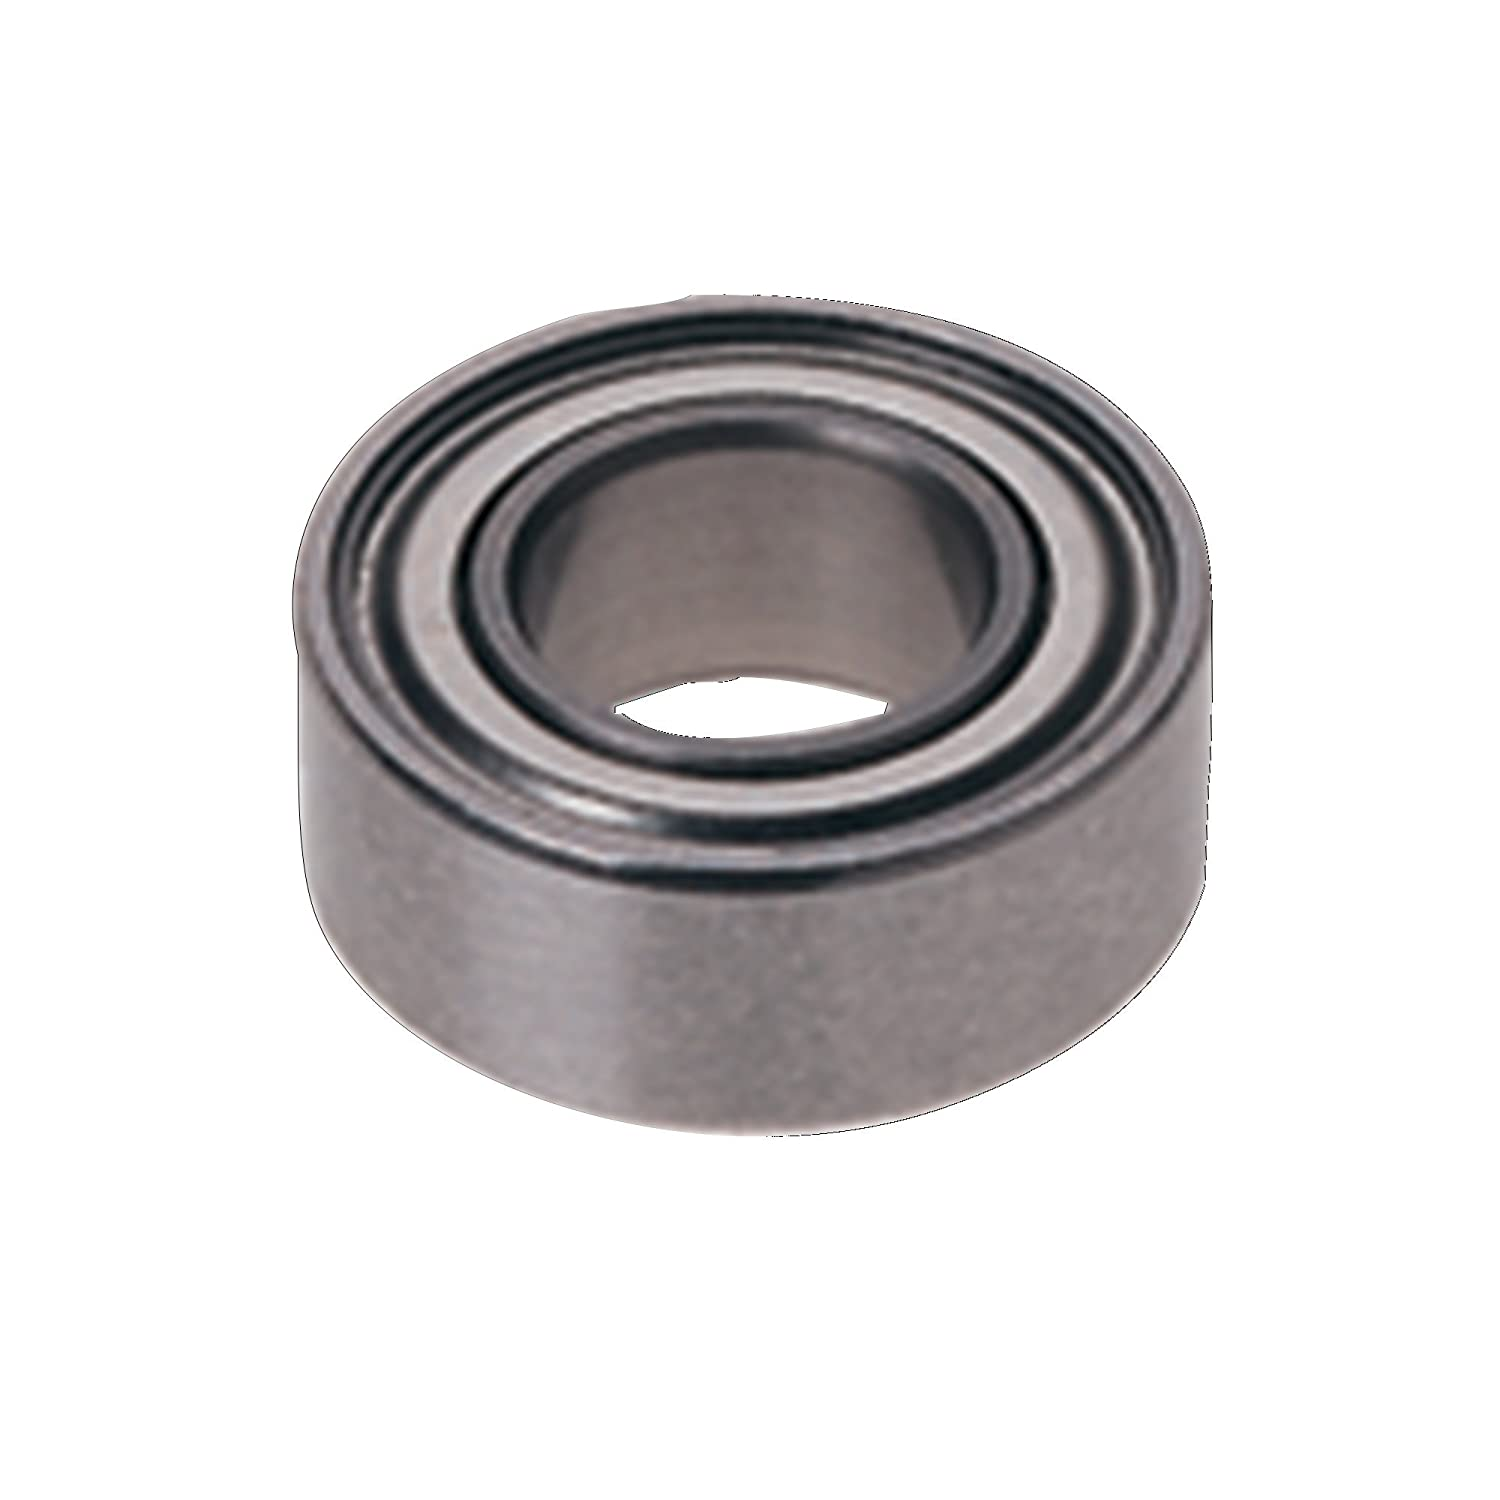 Allstar Performance ALL90054 Camshaft Thrust Button for Small Block Chevy Roller